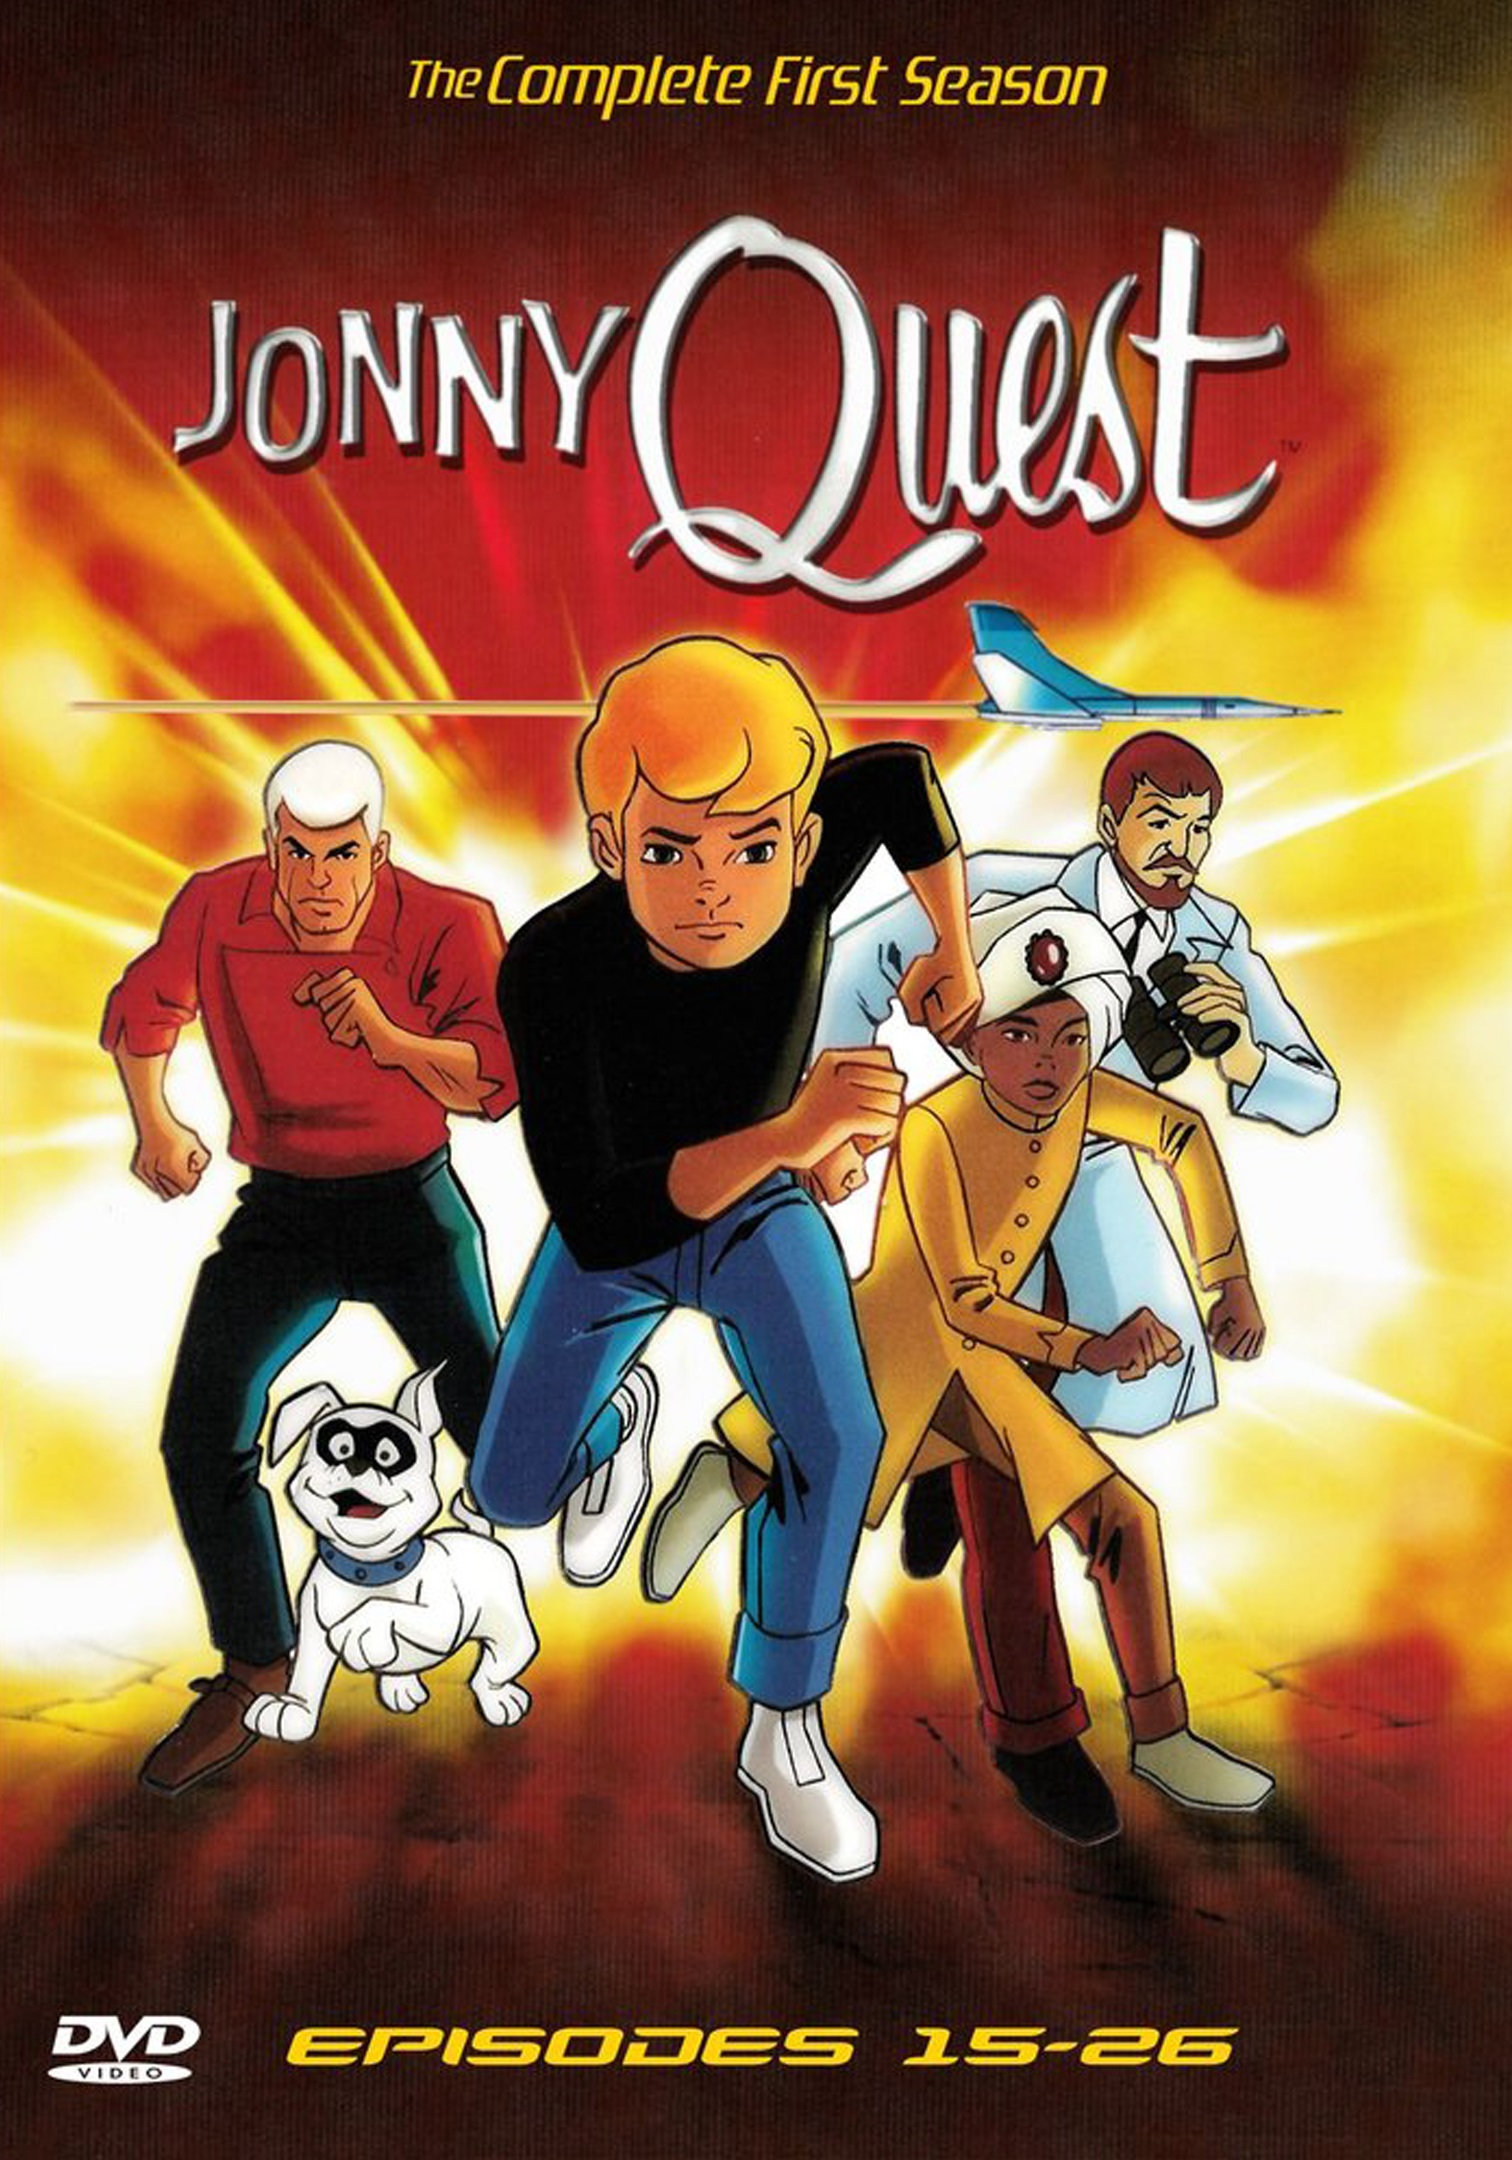 Download Filme Jonny Quest Torrent 2022 Qualidade Hd